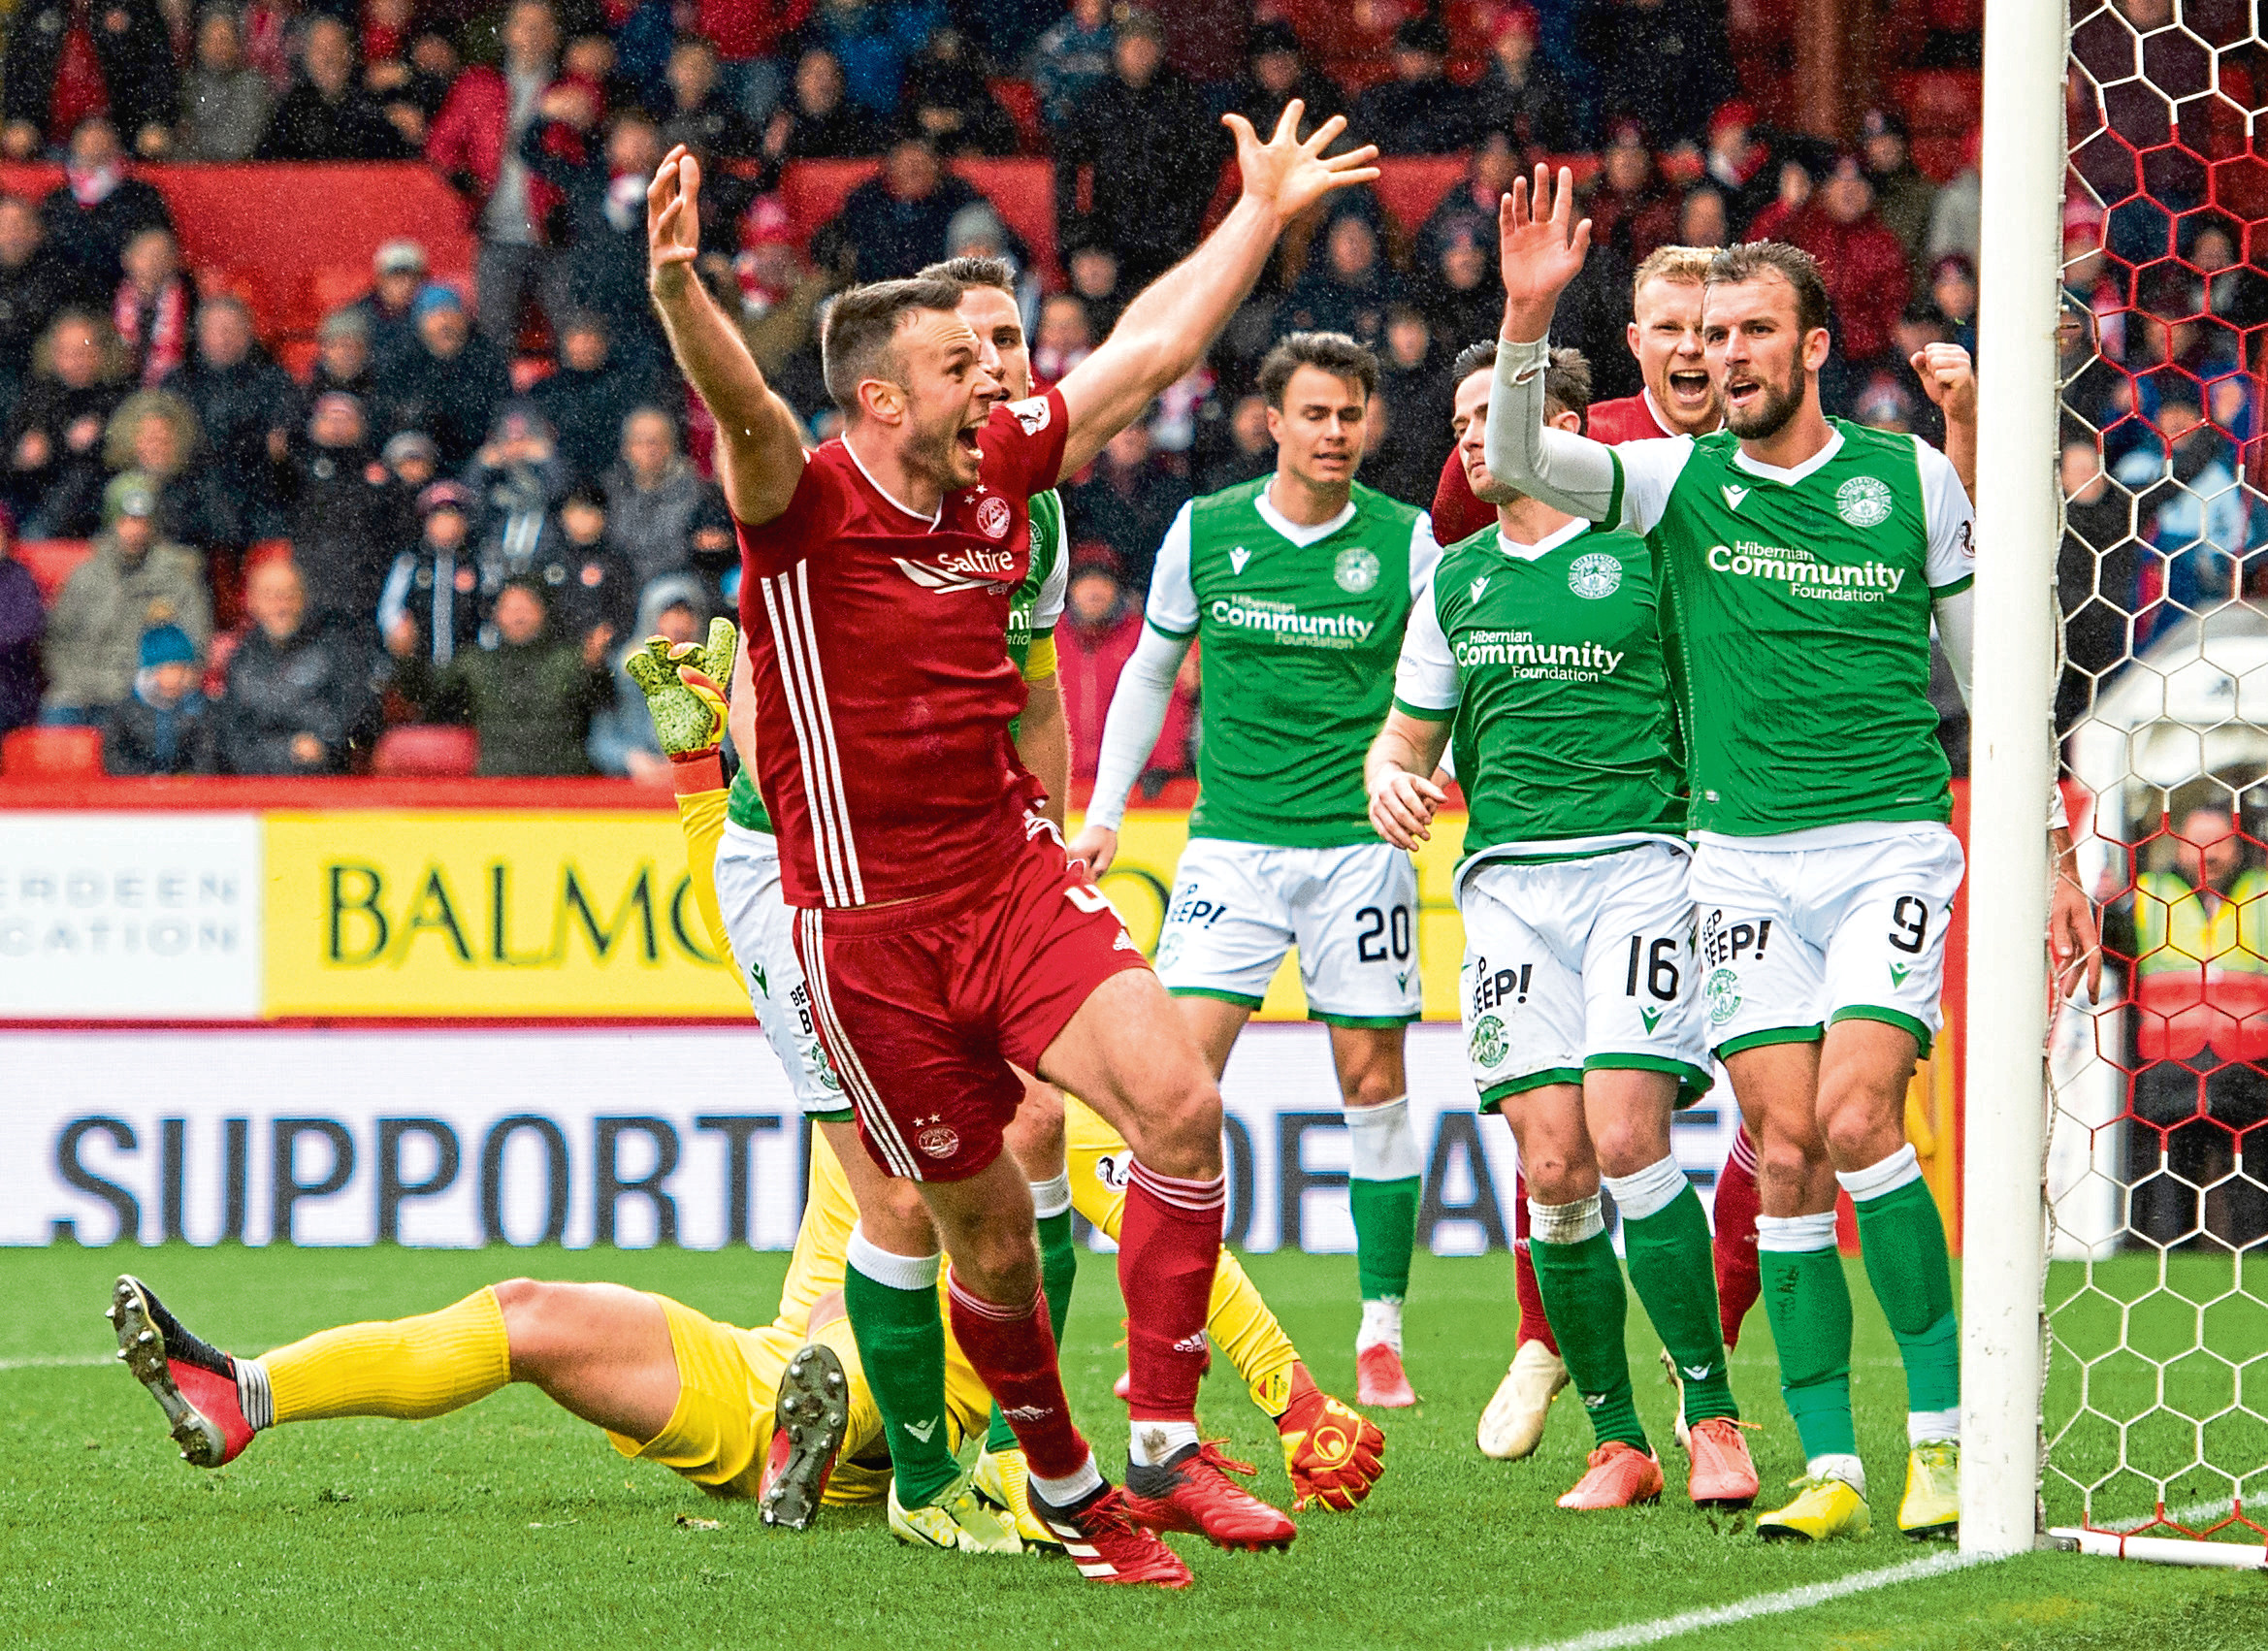 Andy Considine celebrates scoring against Hibs in the last game before the shutdown. The veteran is another player who has performed well over the campaign.